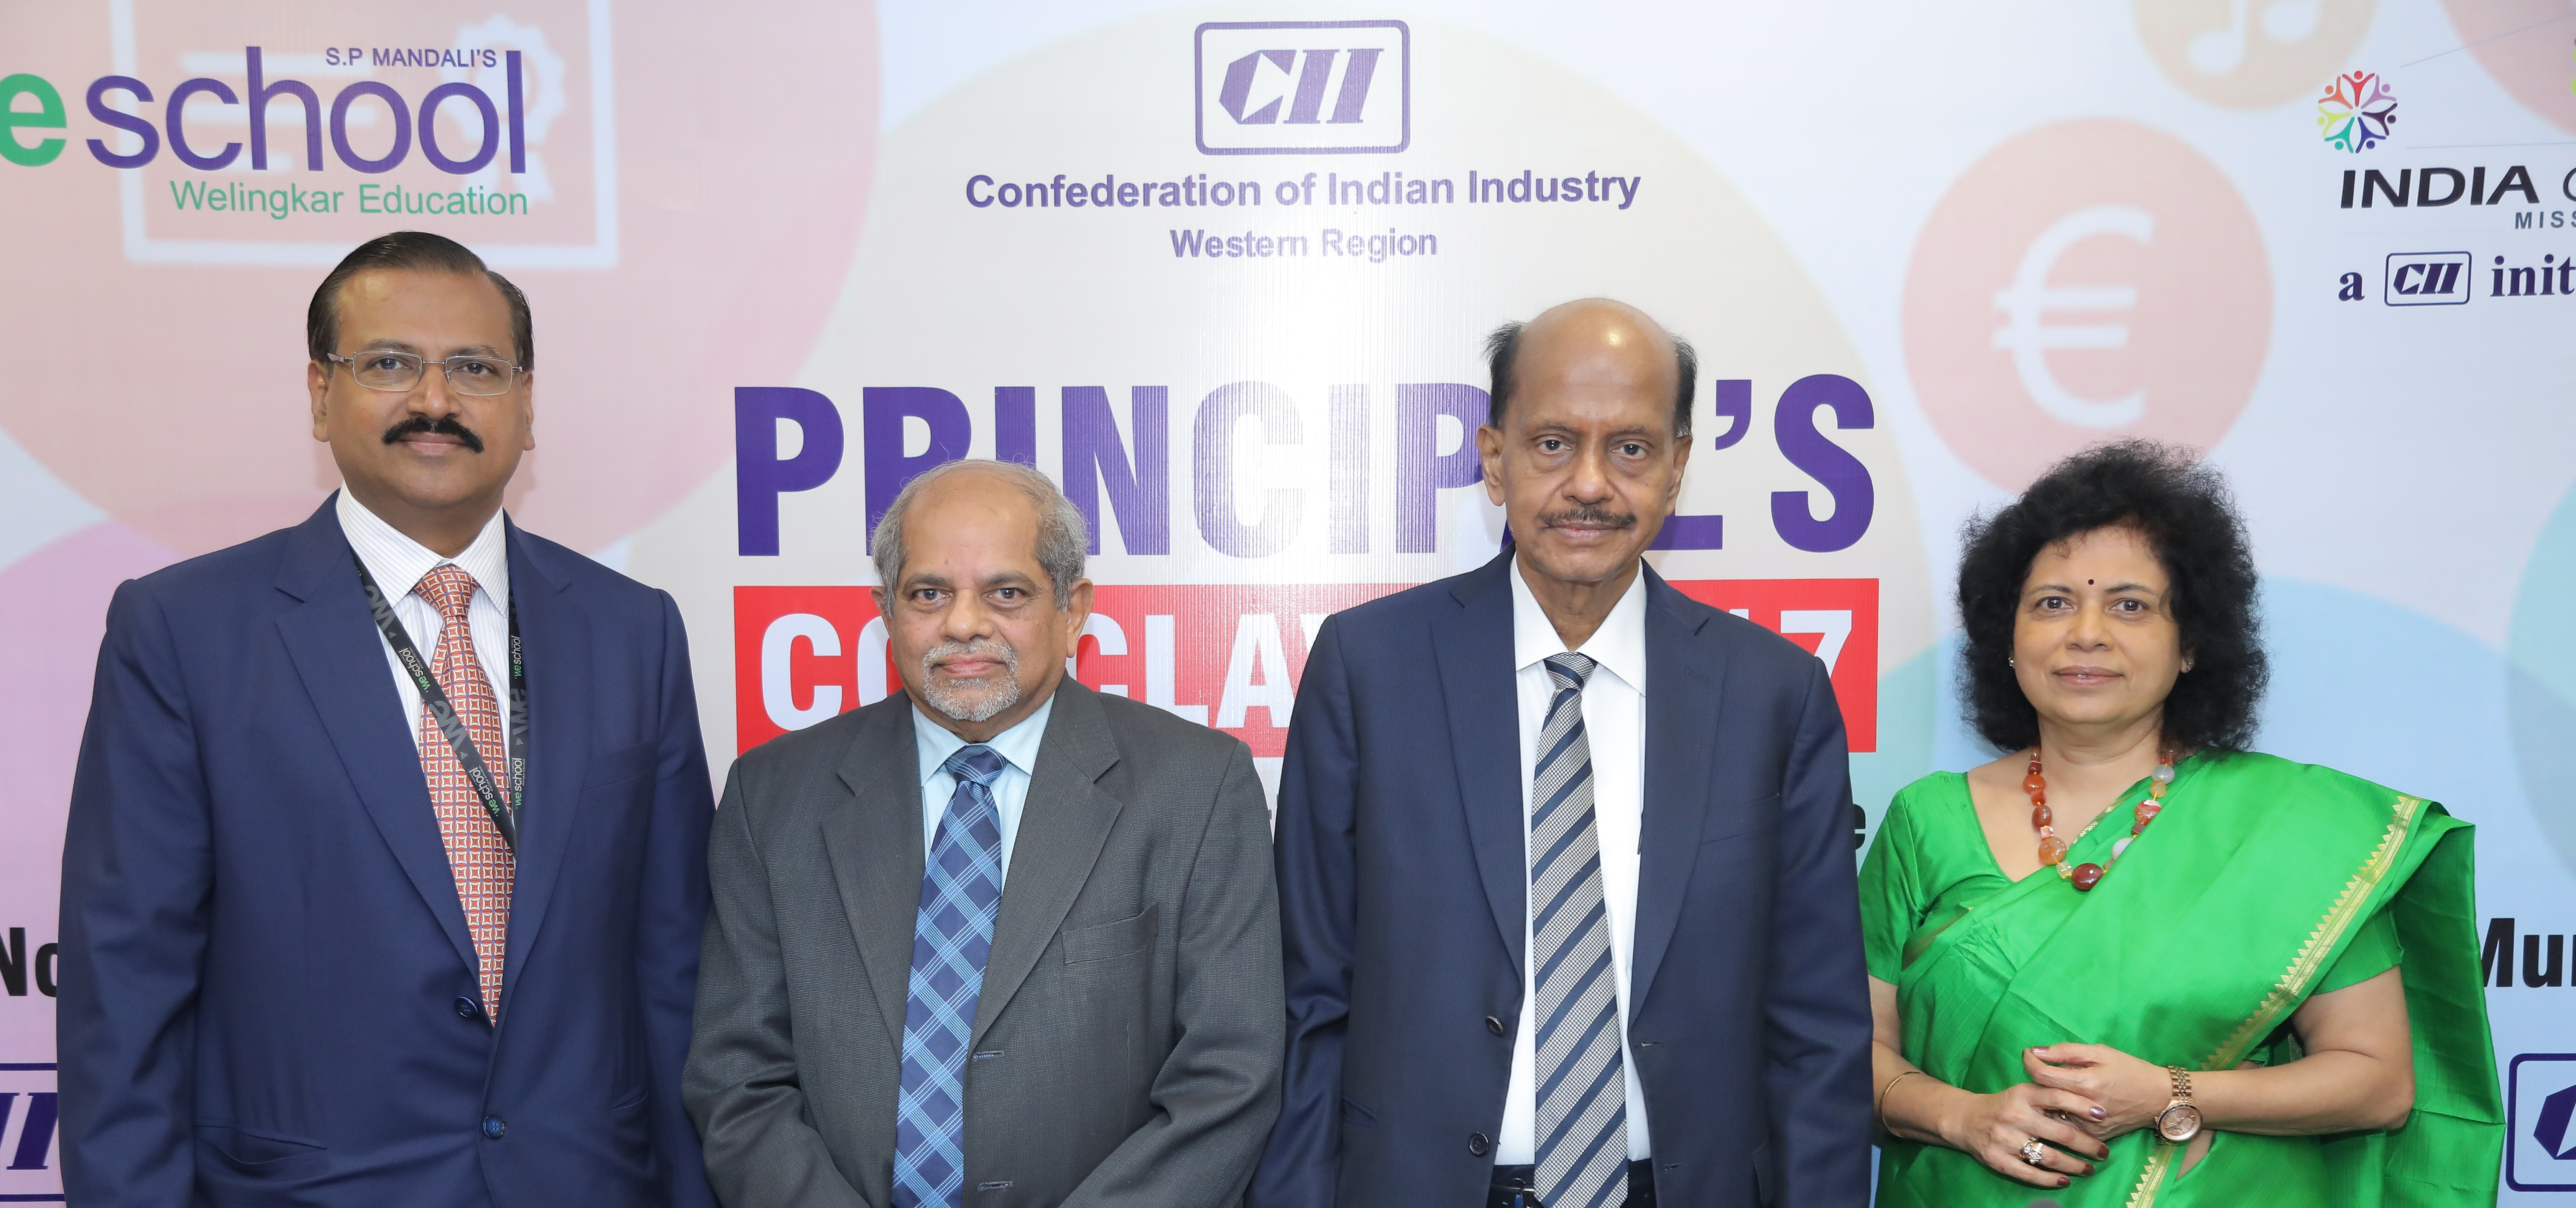 CII and S.P. Mandali's WeSchool redefine tomorrow's classroom at the 'Principal's Conclave'